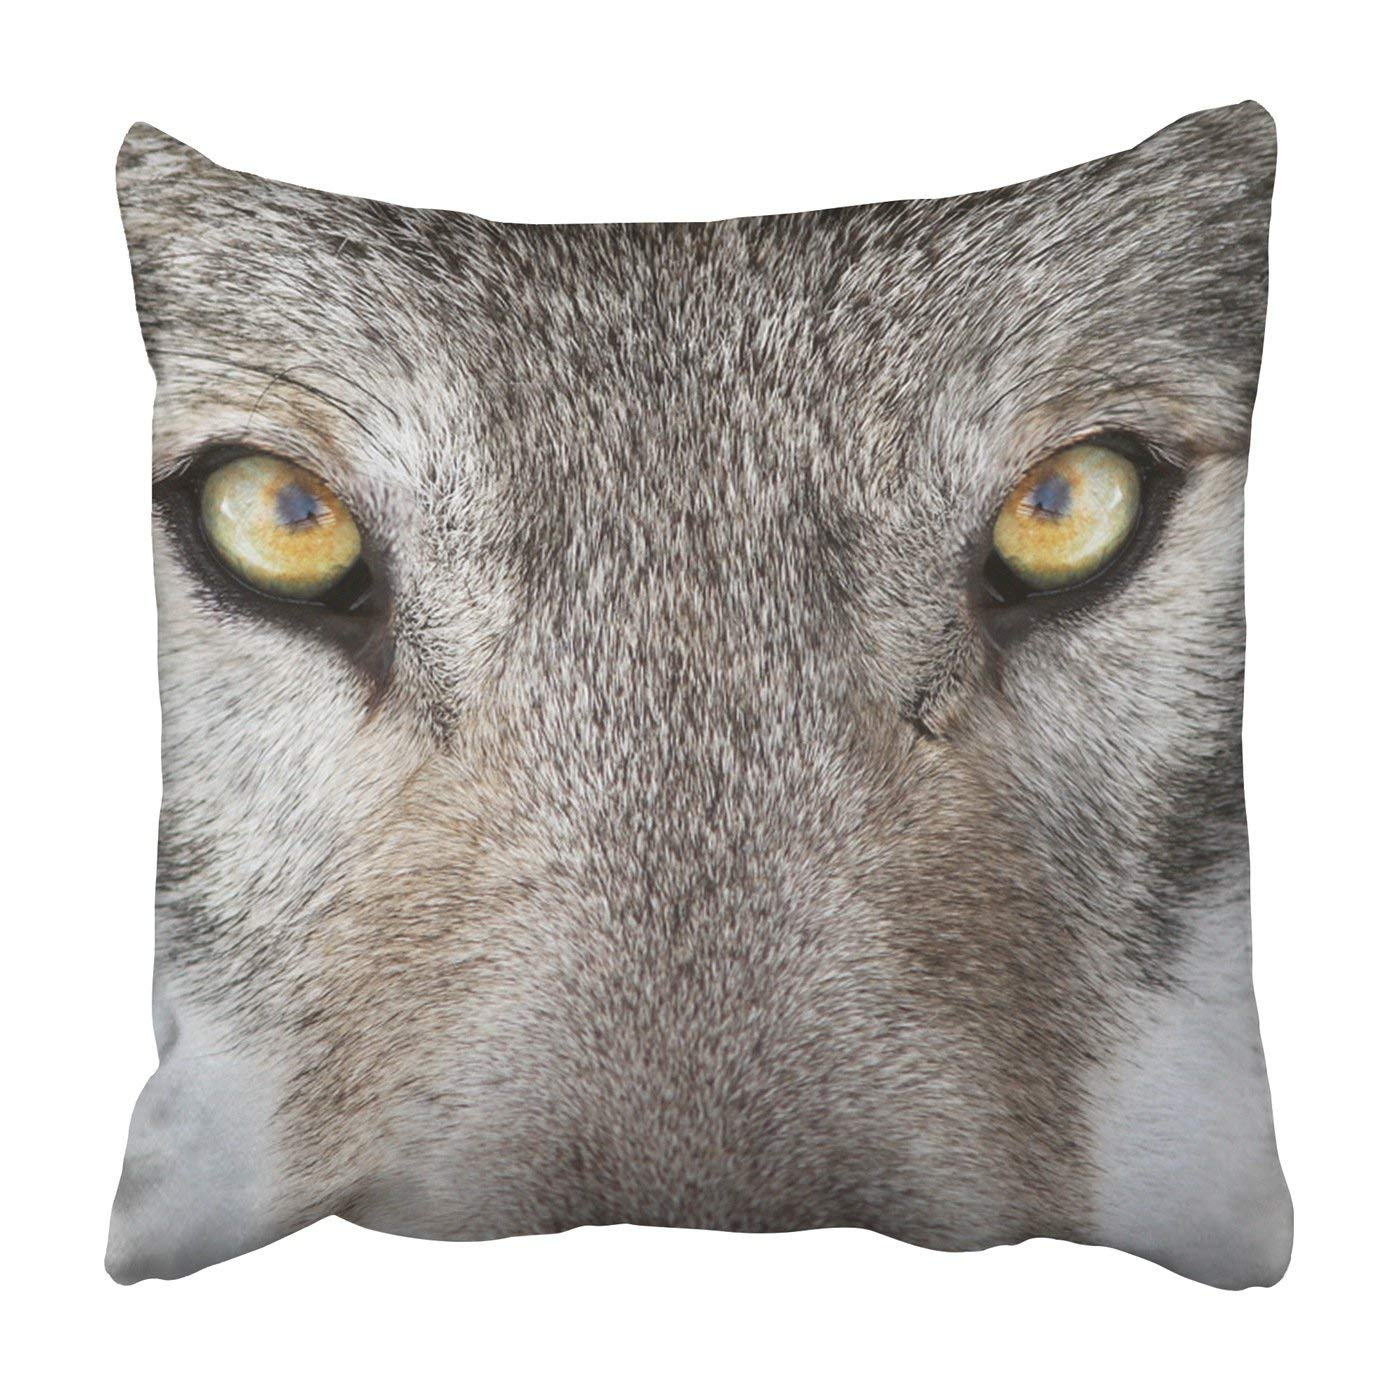 BPBOP Timber wolf portrait wolf with a yellow eyes Pillowcase Throw Pillow Cover Case 20x20 inches